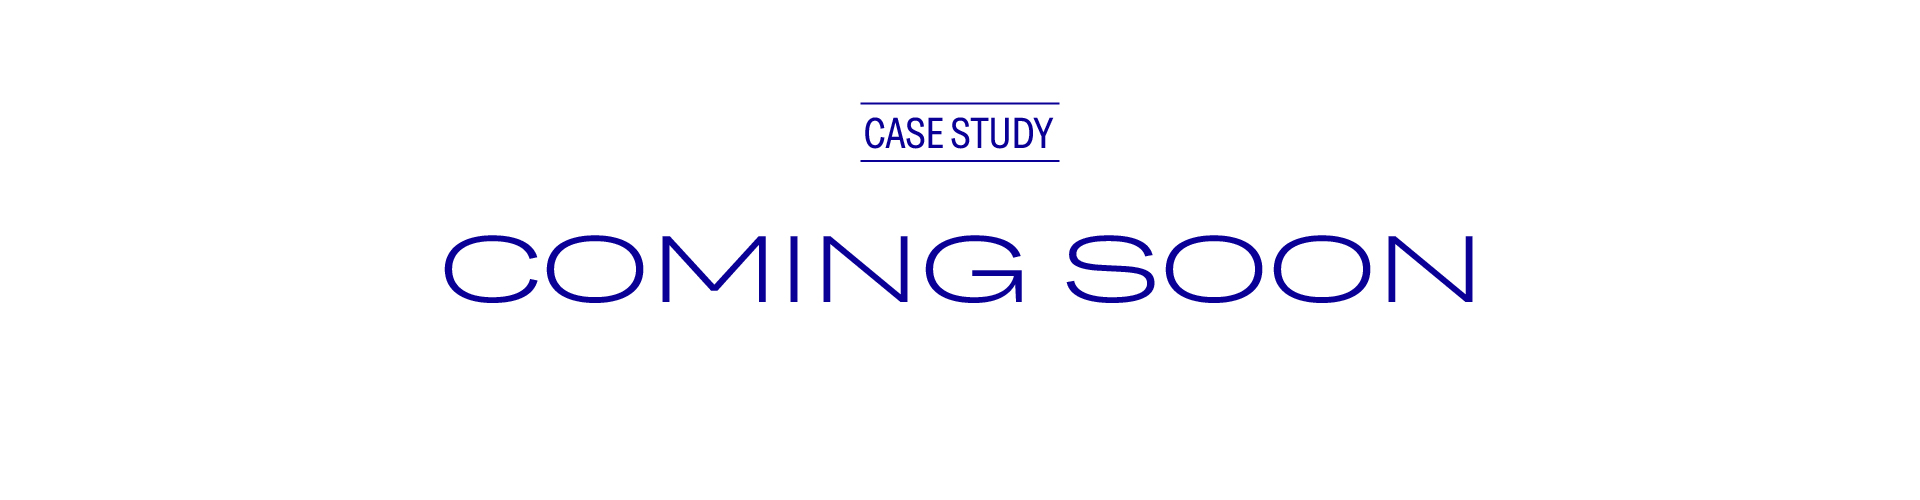 France Judo case study coming soon